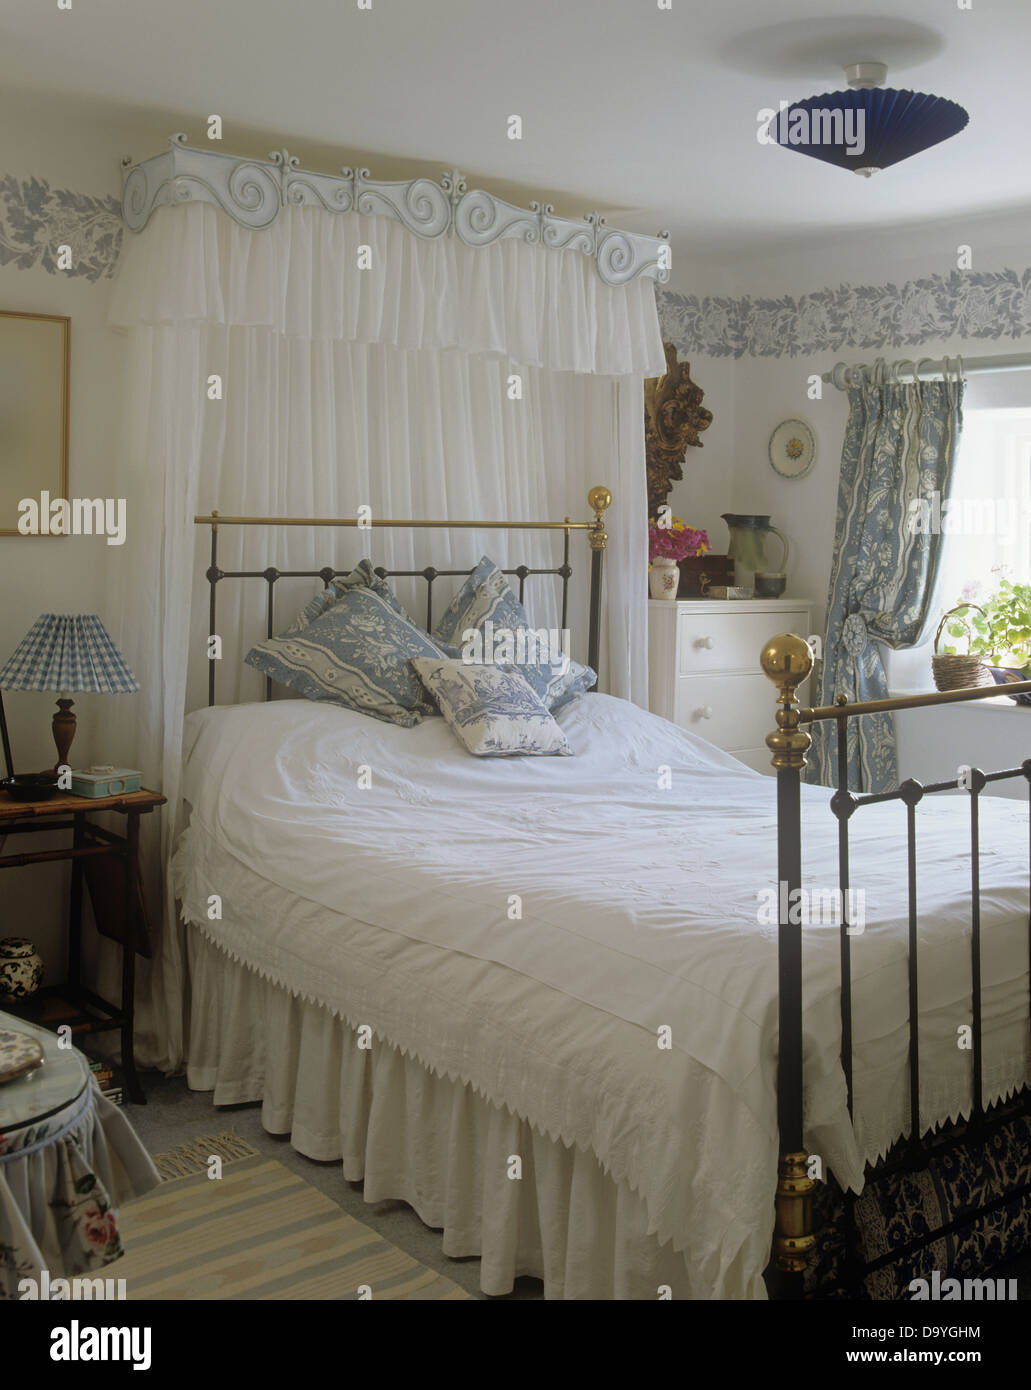 Bedroom ceiling drapes - Canopy With White Voile Drapes Above Brass Bed With White Lace Bed Cover In Cottage Bedroom With Wallpaper Border Below Ceiling